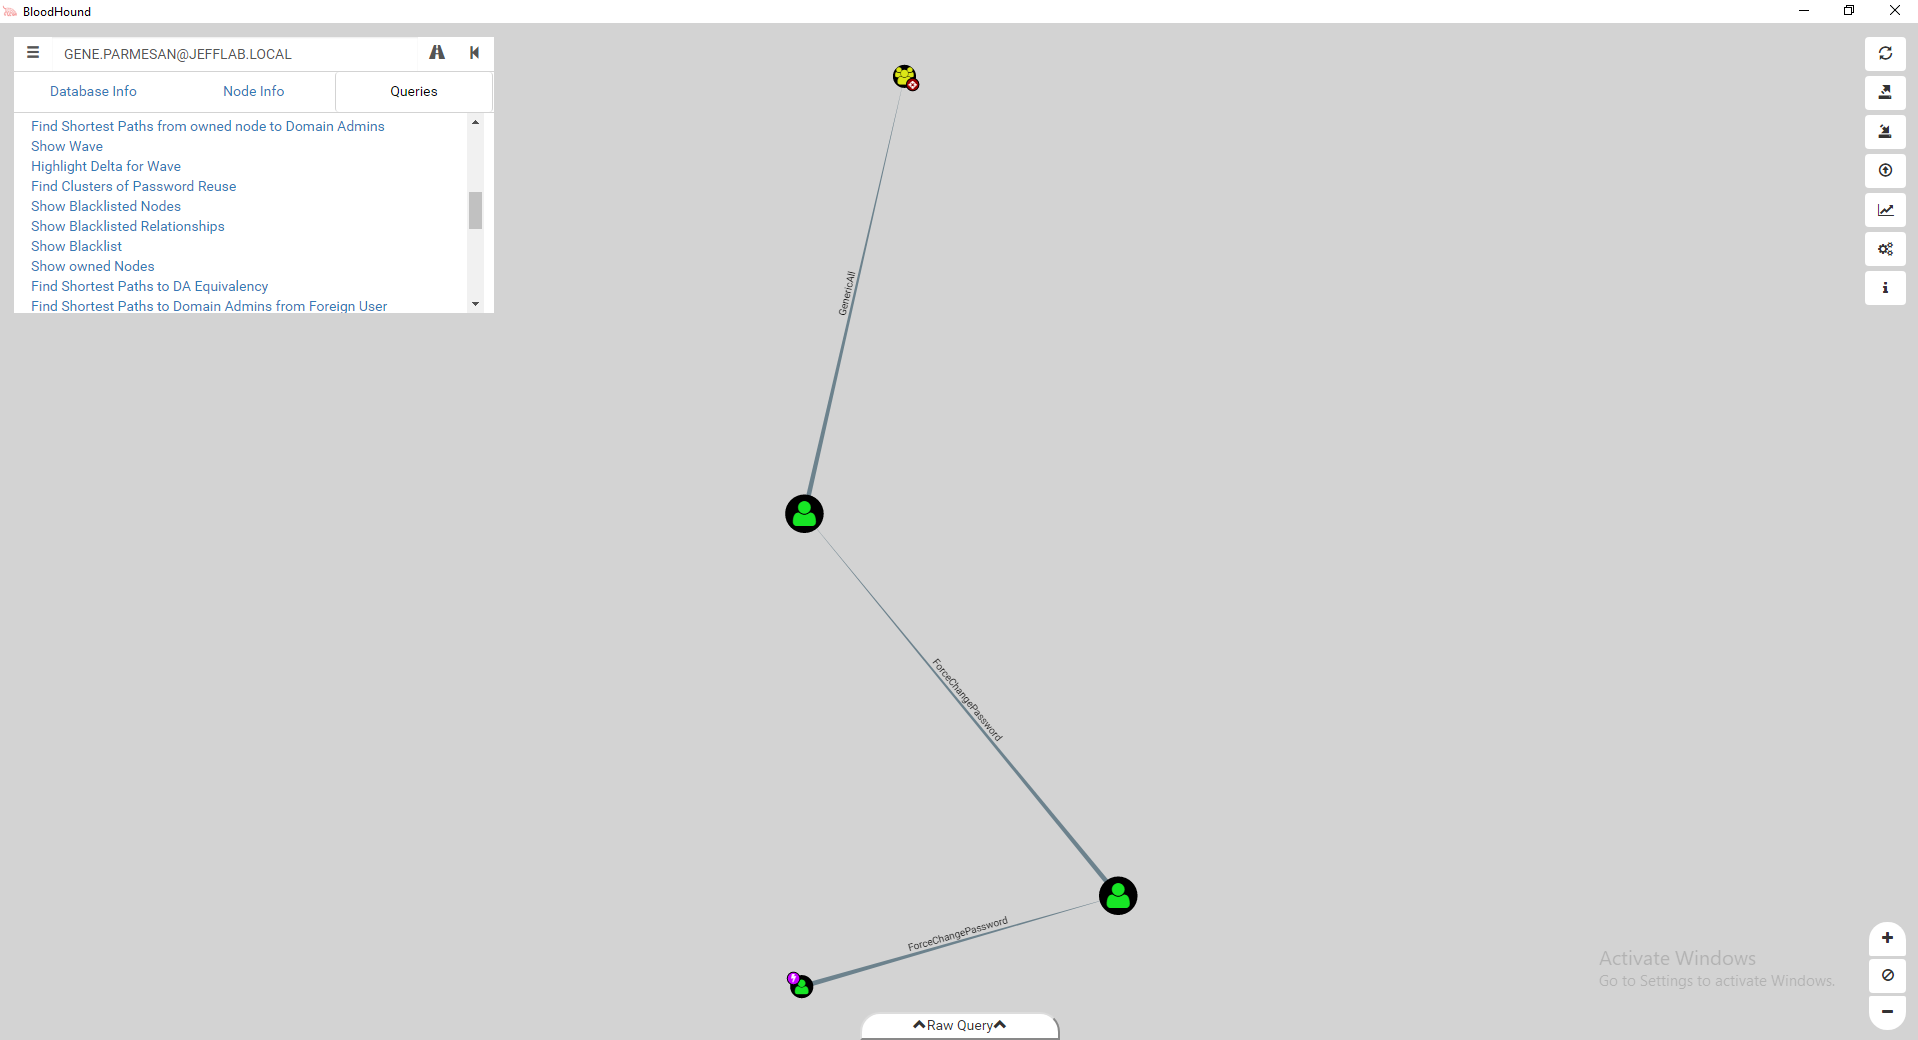 Find Shortest Path from owned node to Domain Admin